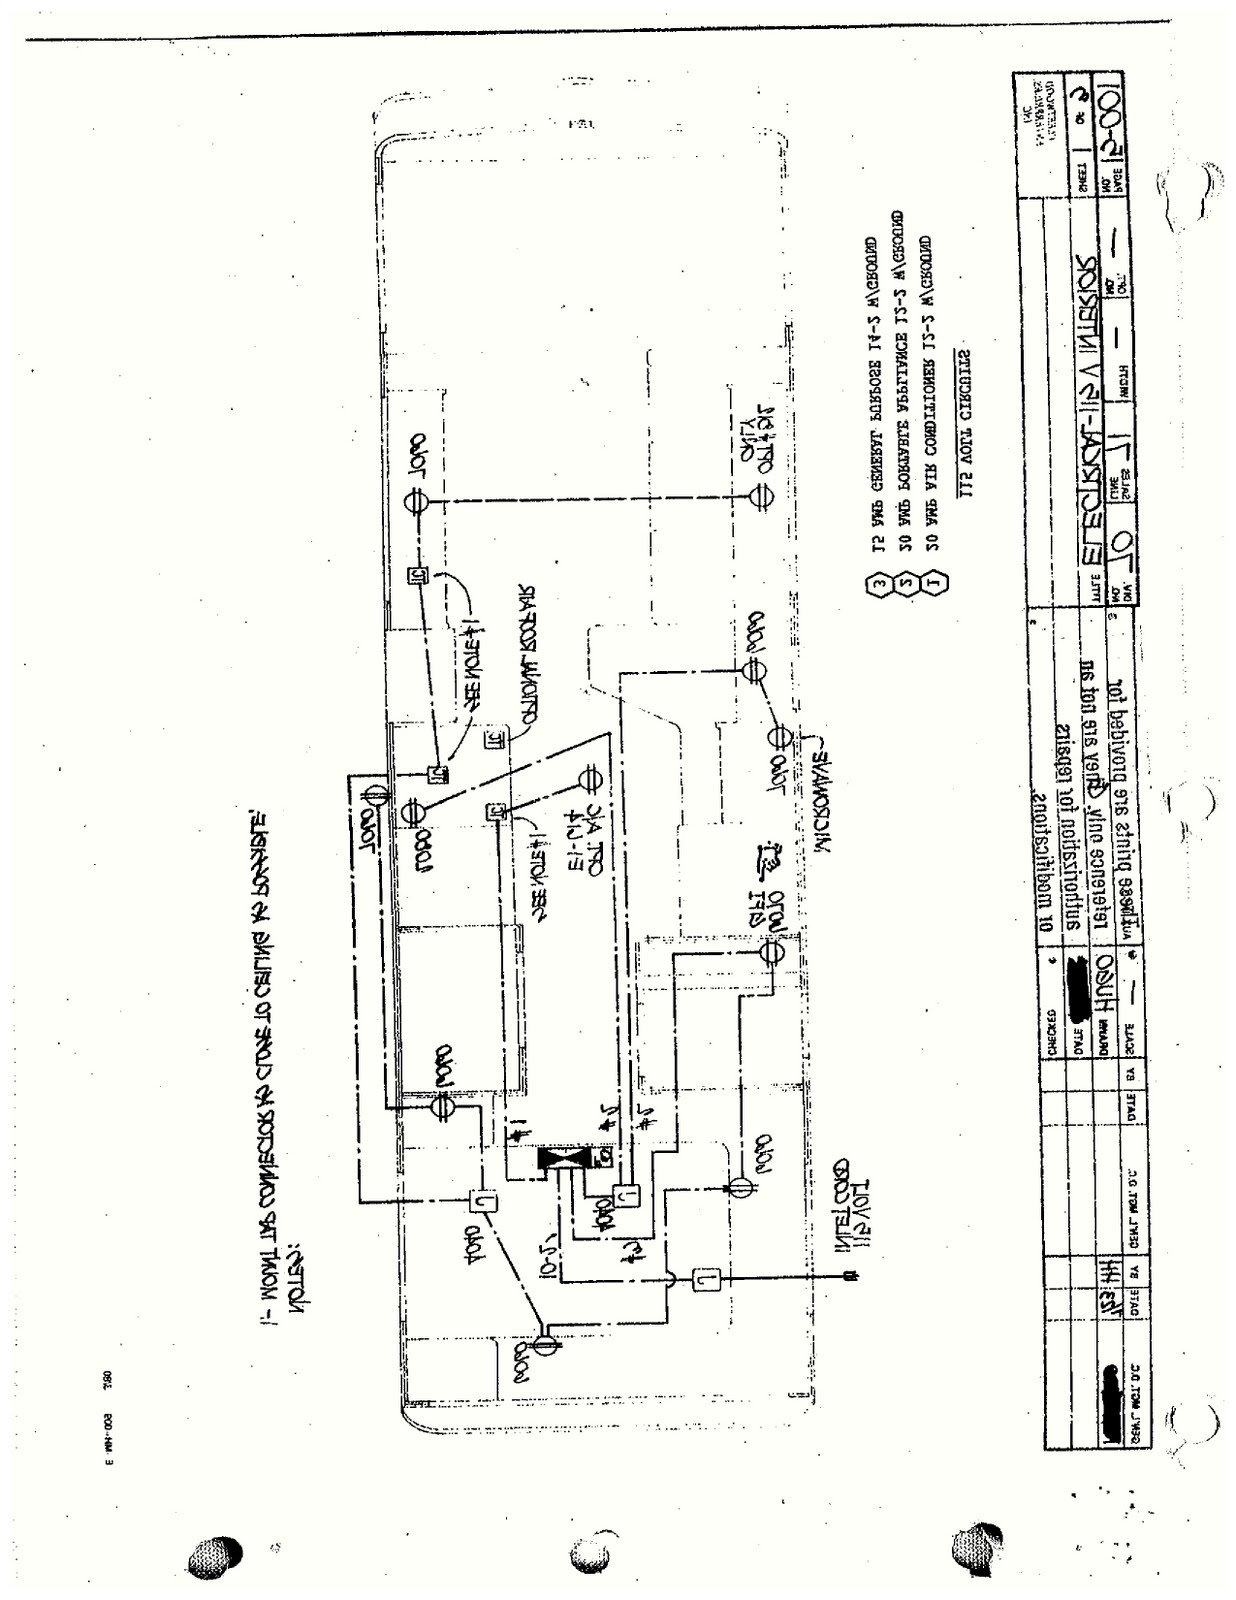 small resolution of must be the place i reckon nyuk nyuk nyuk curly auto parts diagrams wiring diagrams second